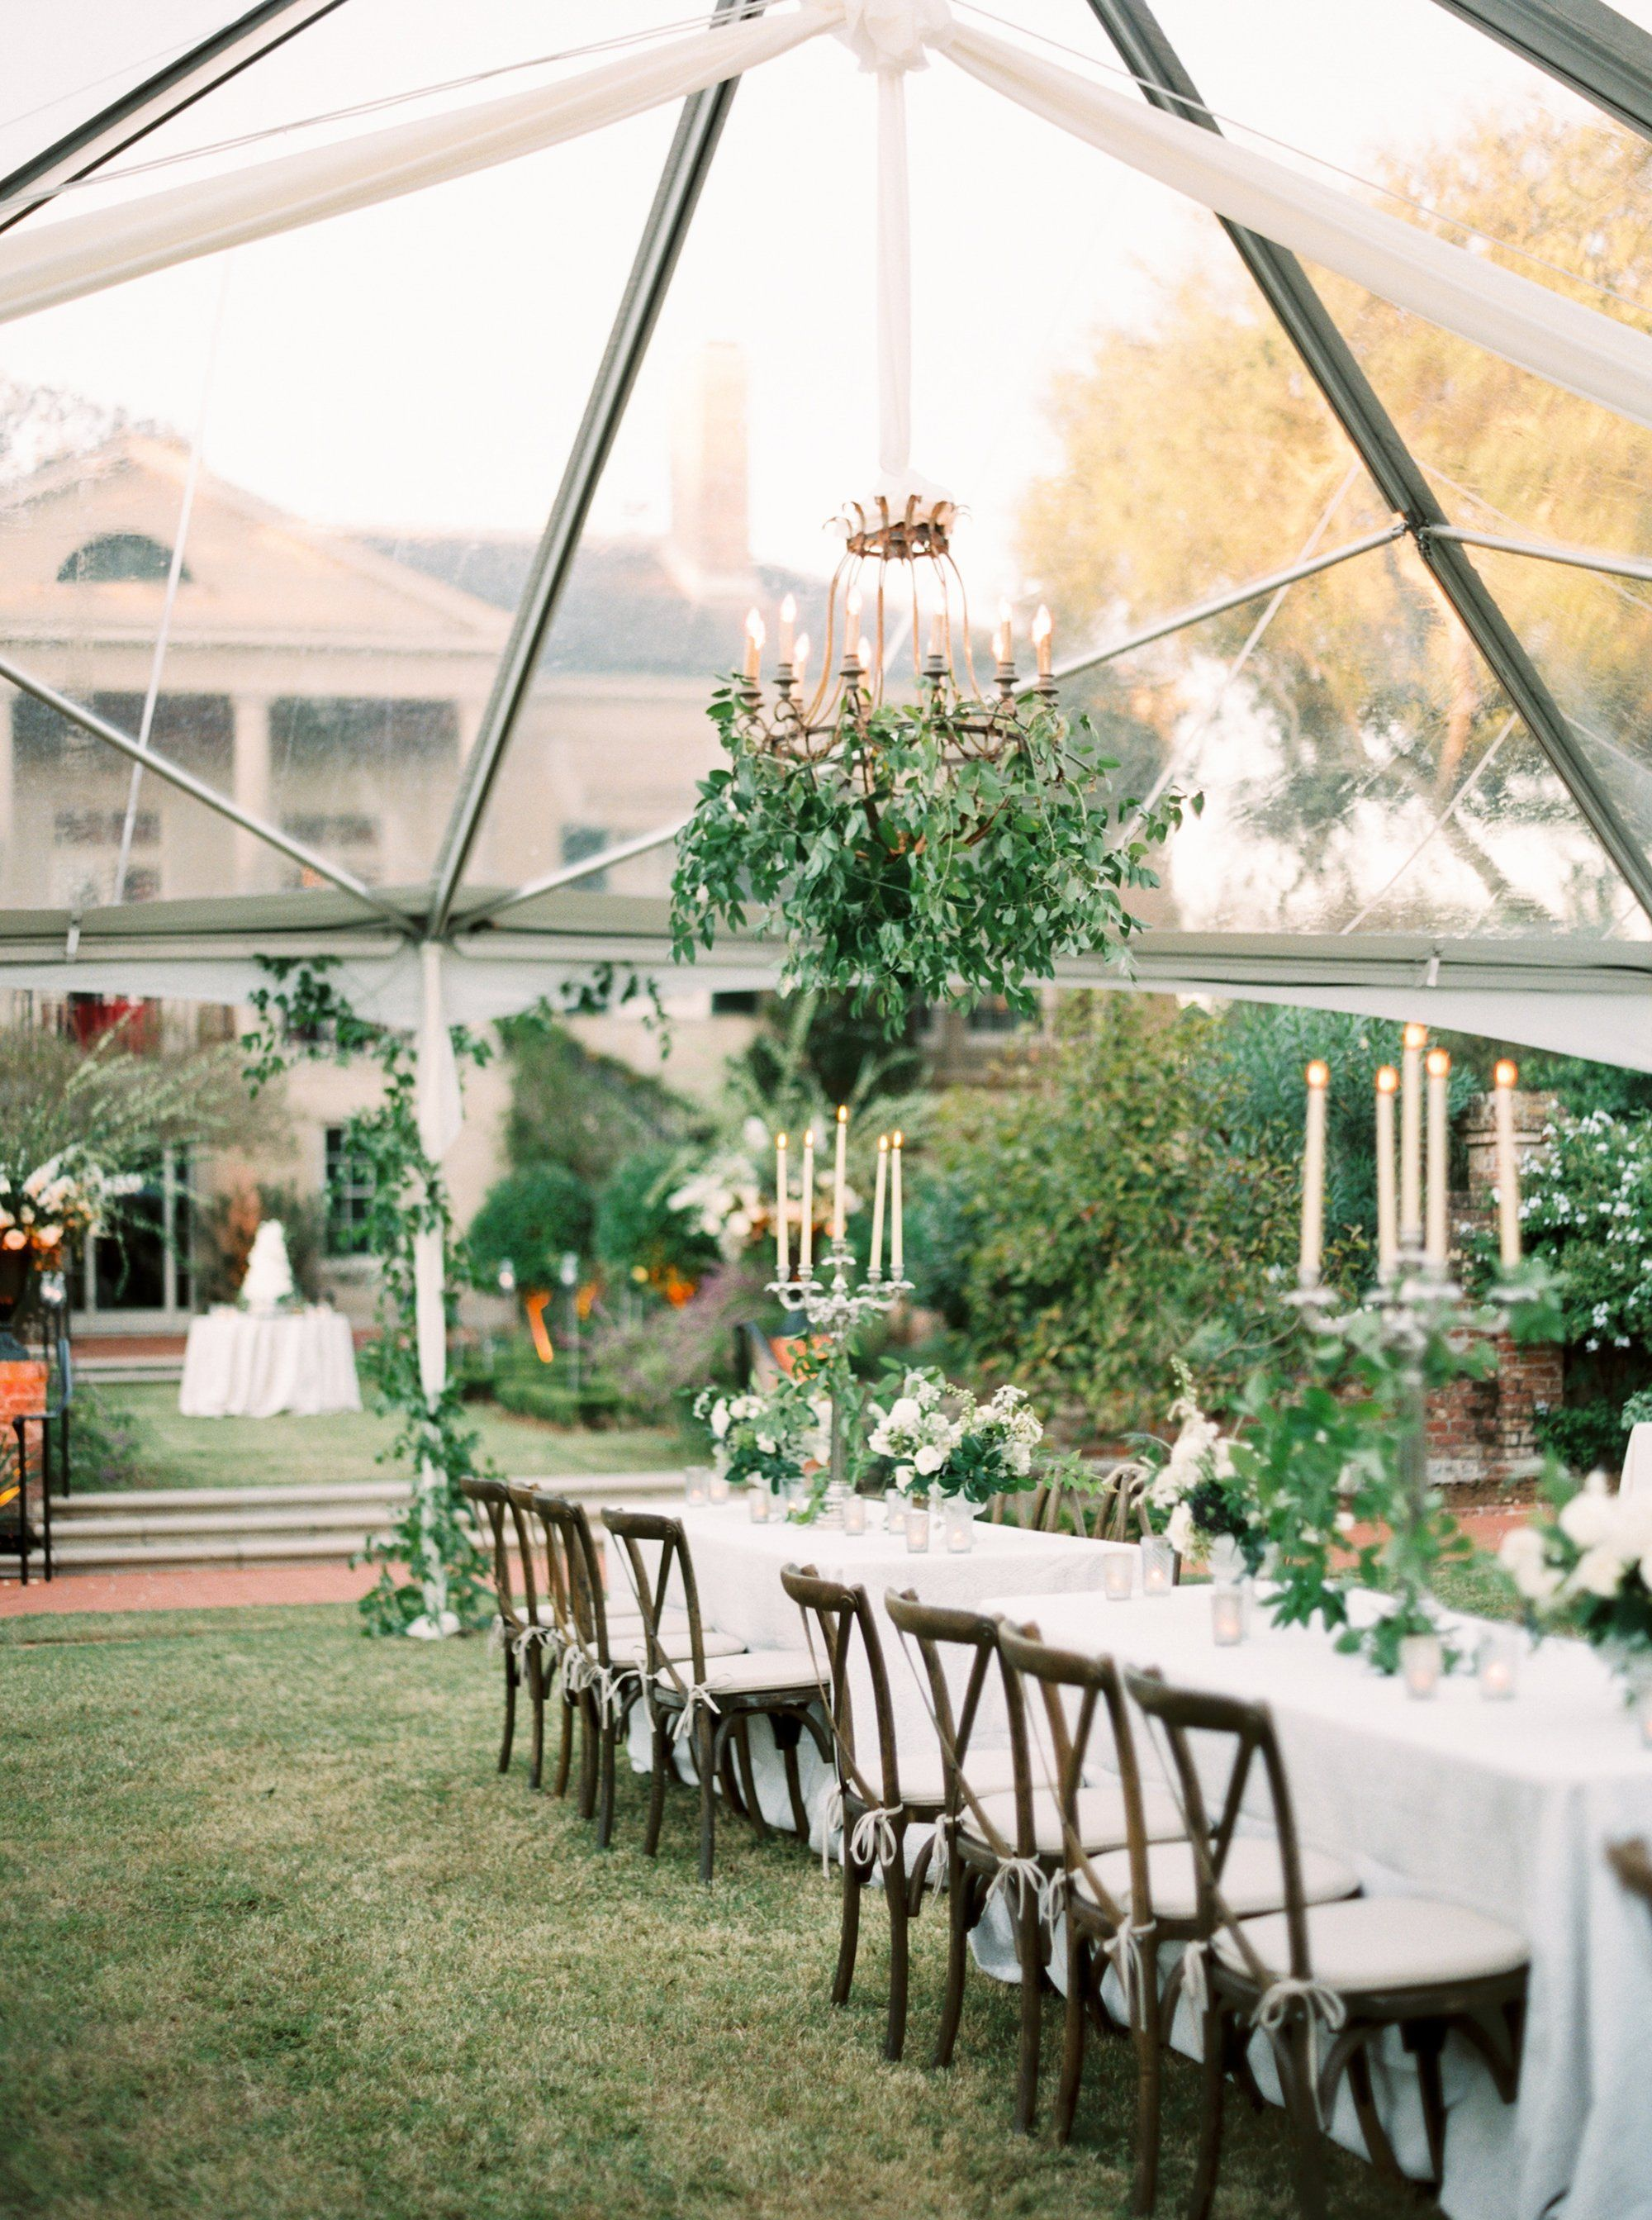 Tent | Hillary Hogan and Keith Putnam-Delaney's Garden Wedding in New Orleans